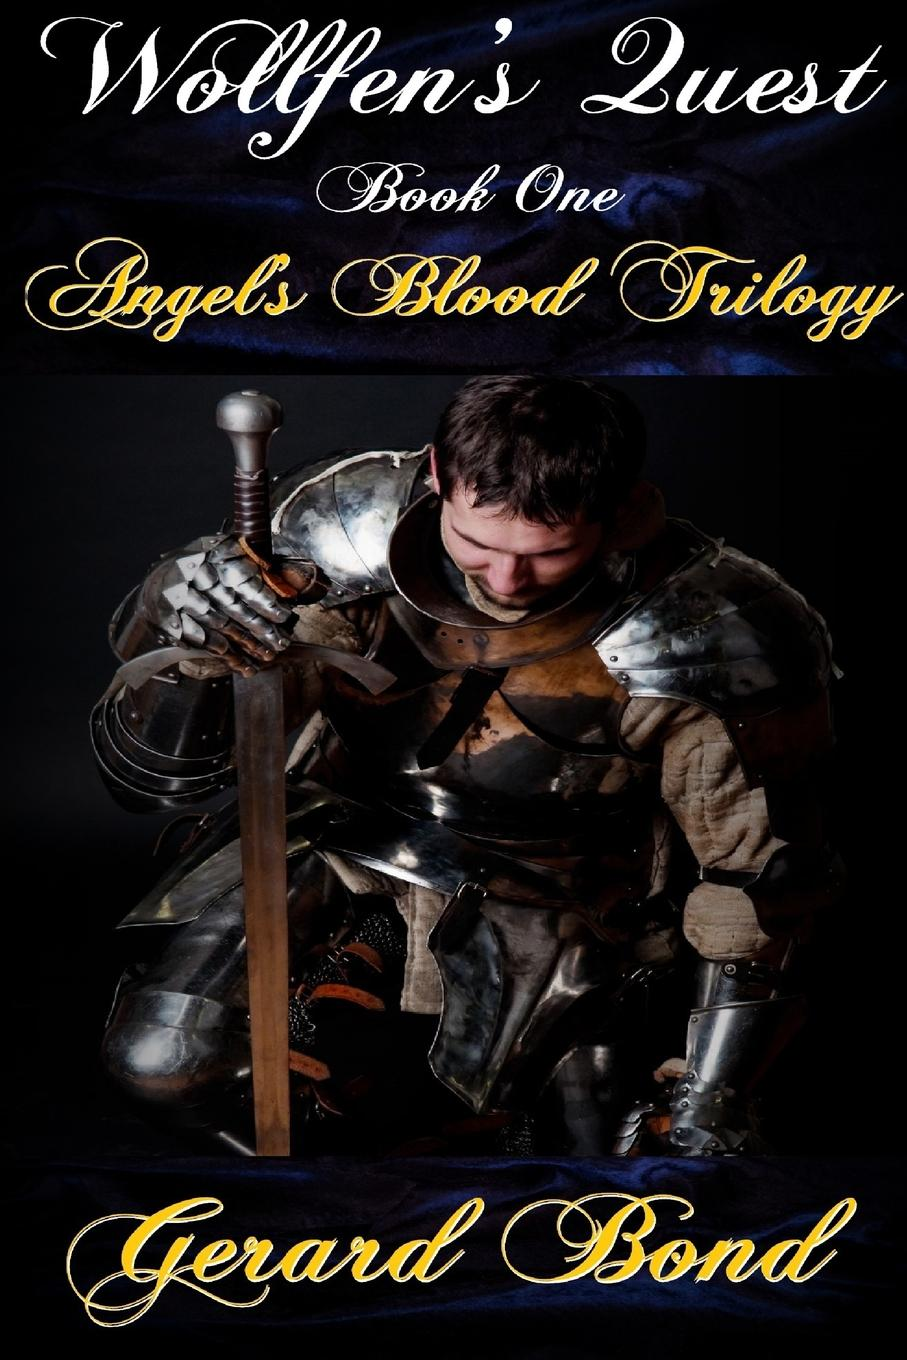 Gerard Bond Wollfen.s Quest. Book One Angel.s Blood Trilogy public enemy public enemy power to the people and the beats the definitive collection